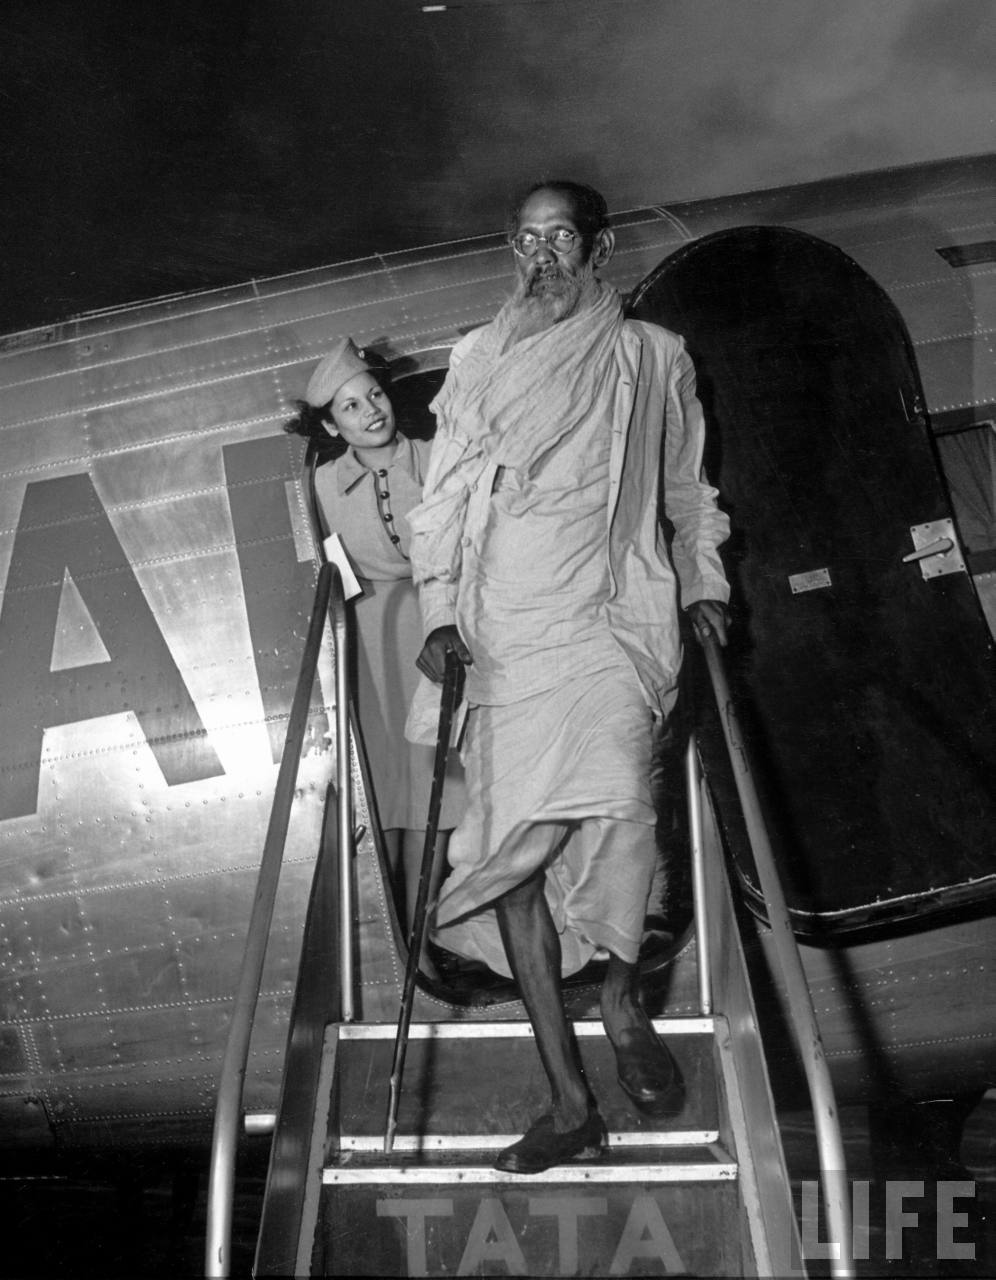 Flight Attendant Avenell Divers (L) saying goodbye to Sunyasi ascetic after flight on Air India.